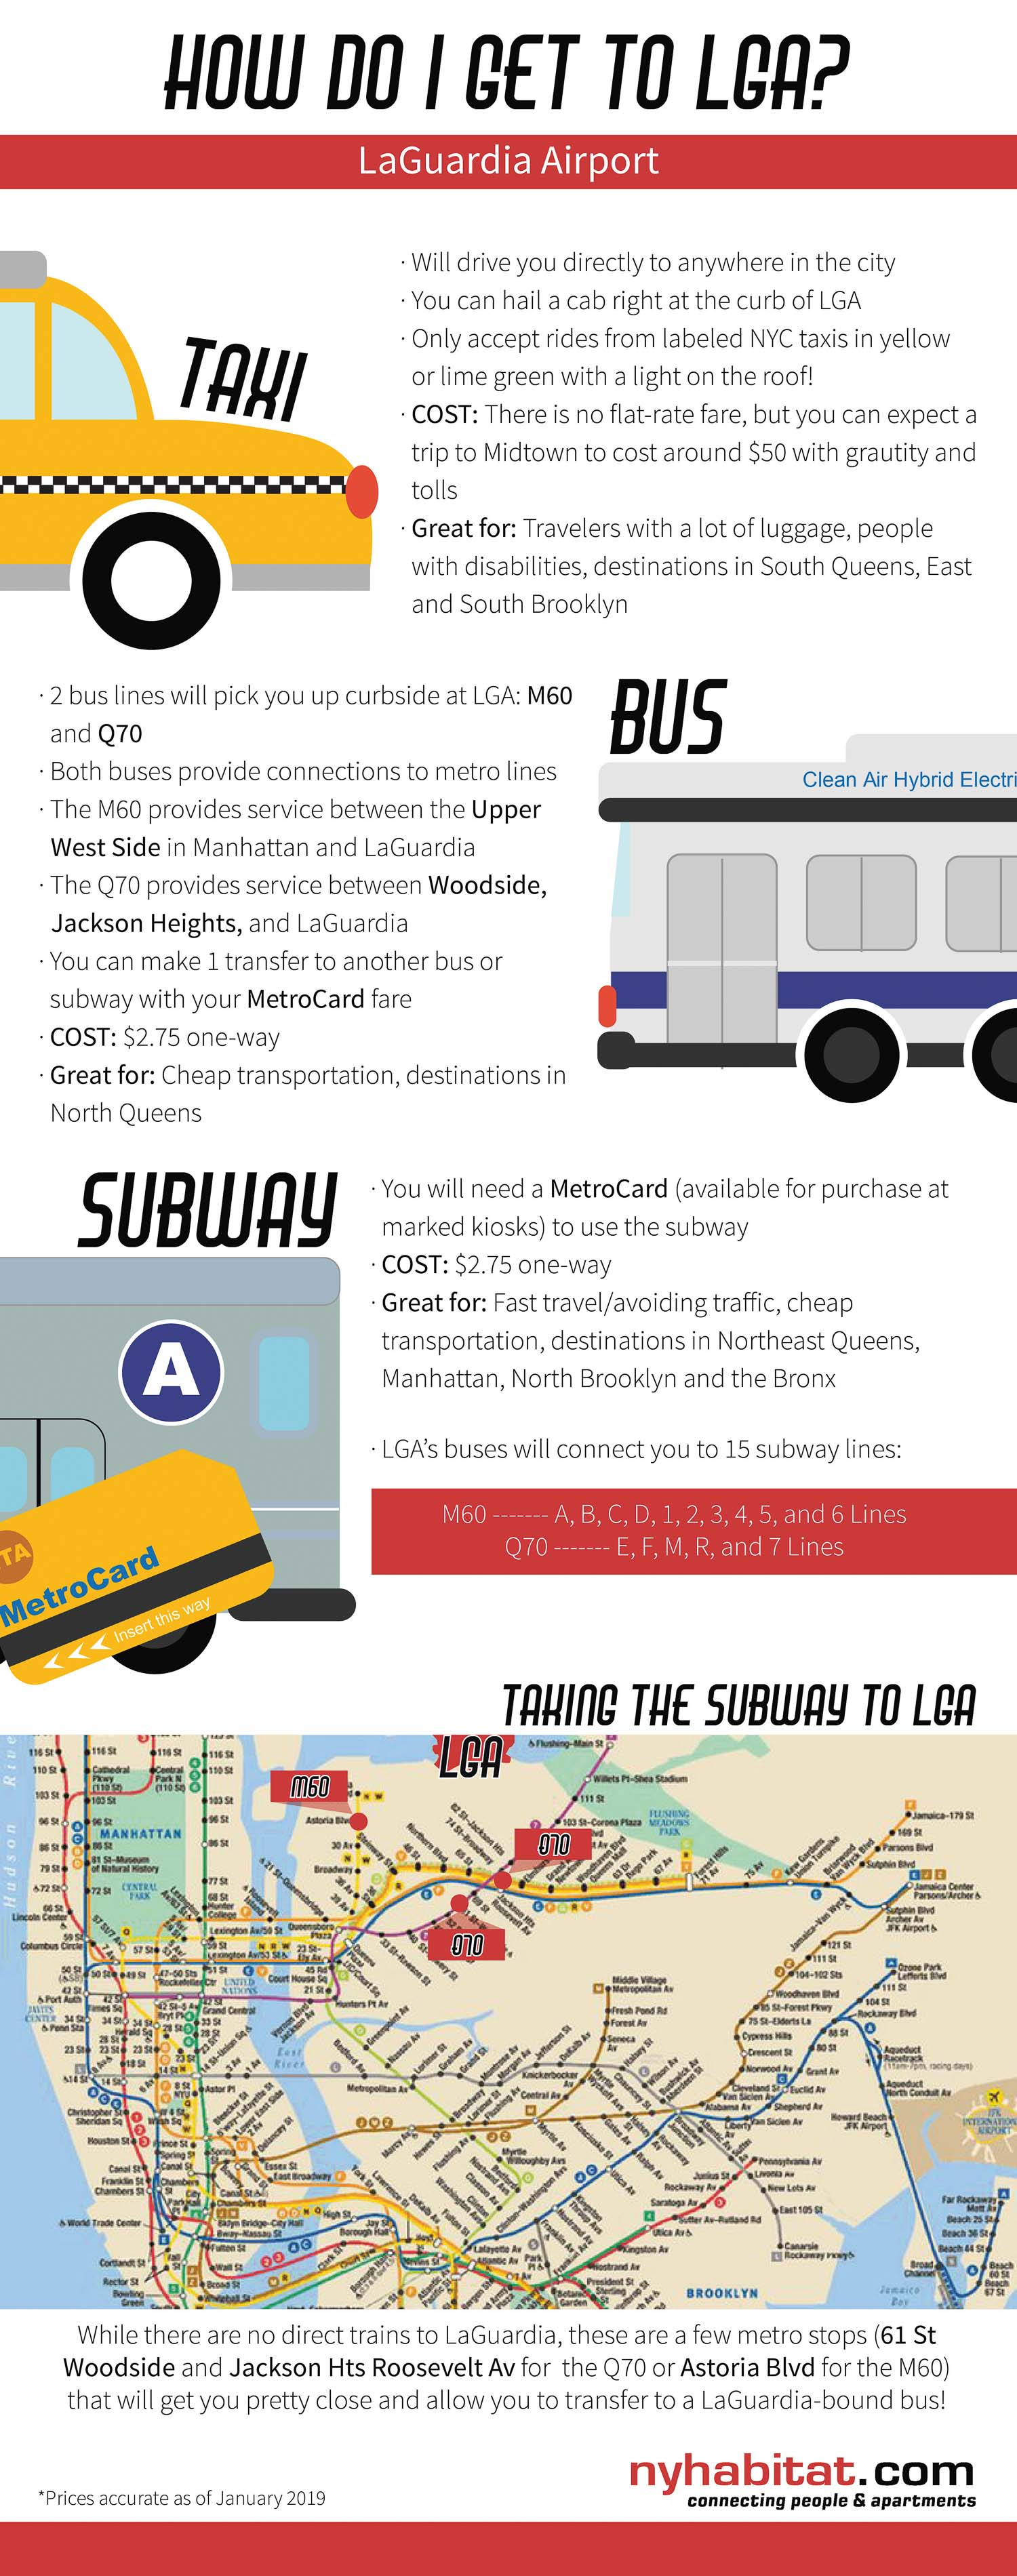 New York Habitat infographic describing LaGuardia transportation options including taxi, buses and subway.